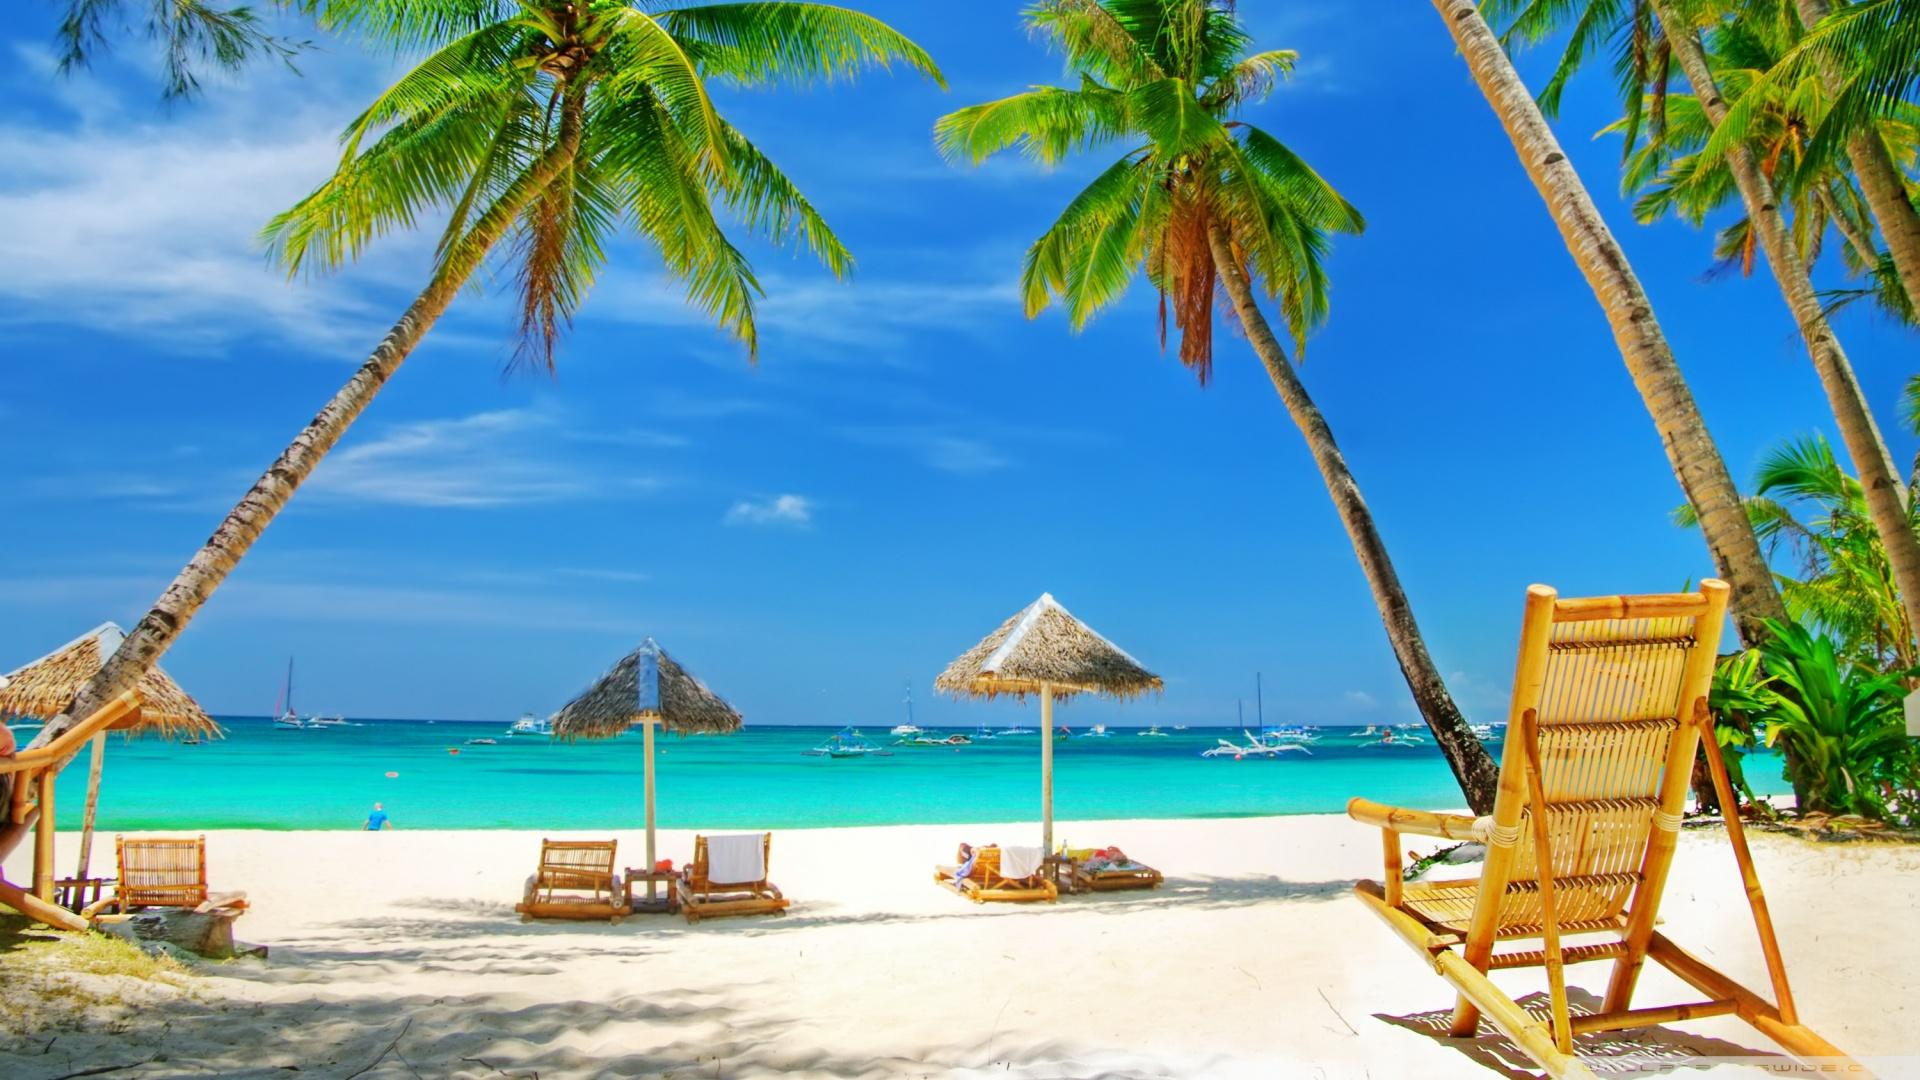 hd wallpaper paradise beach wallpapers55com   Best Wallpapers for 1920x1080